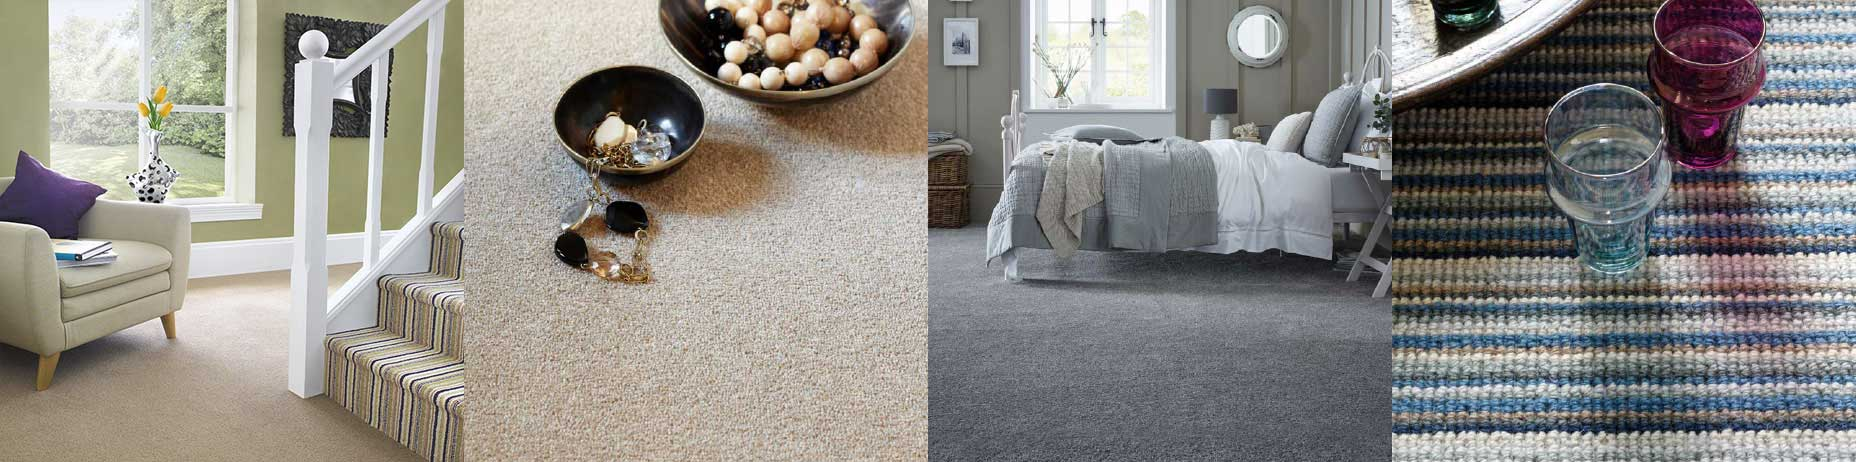 Special offers on carpets